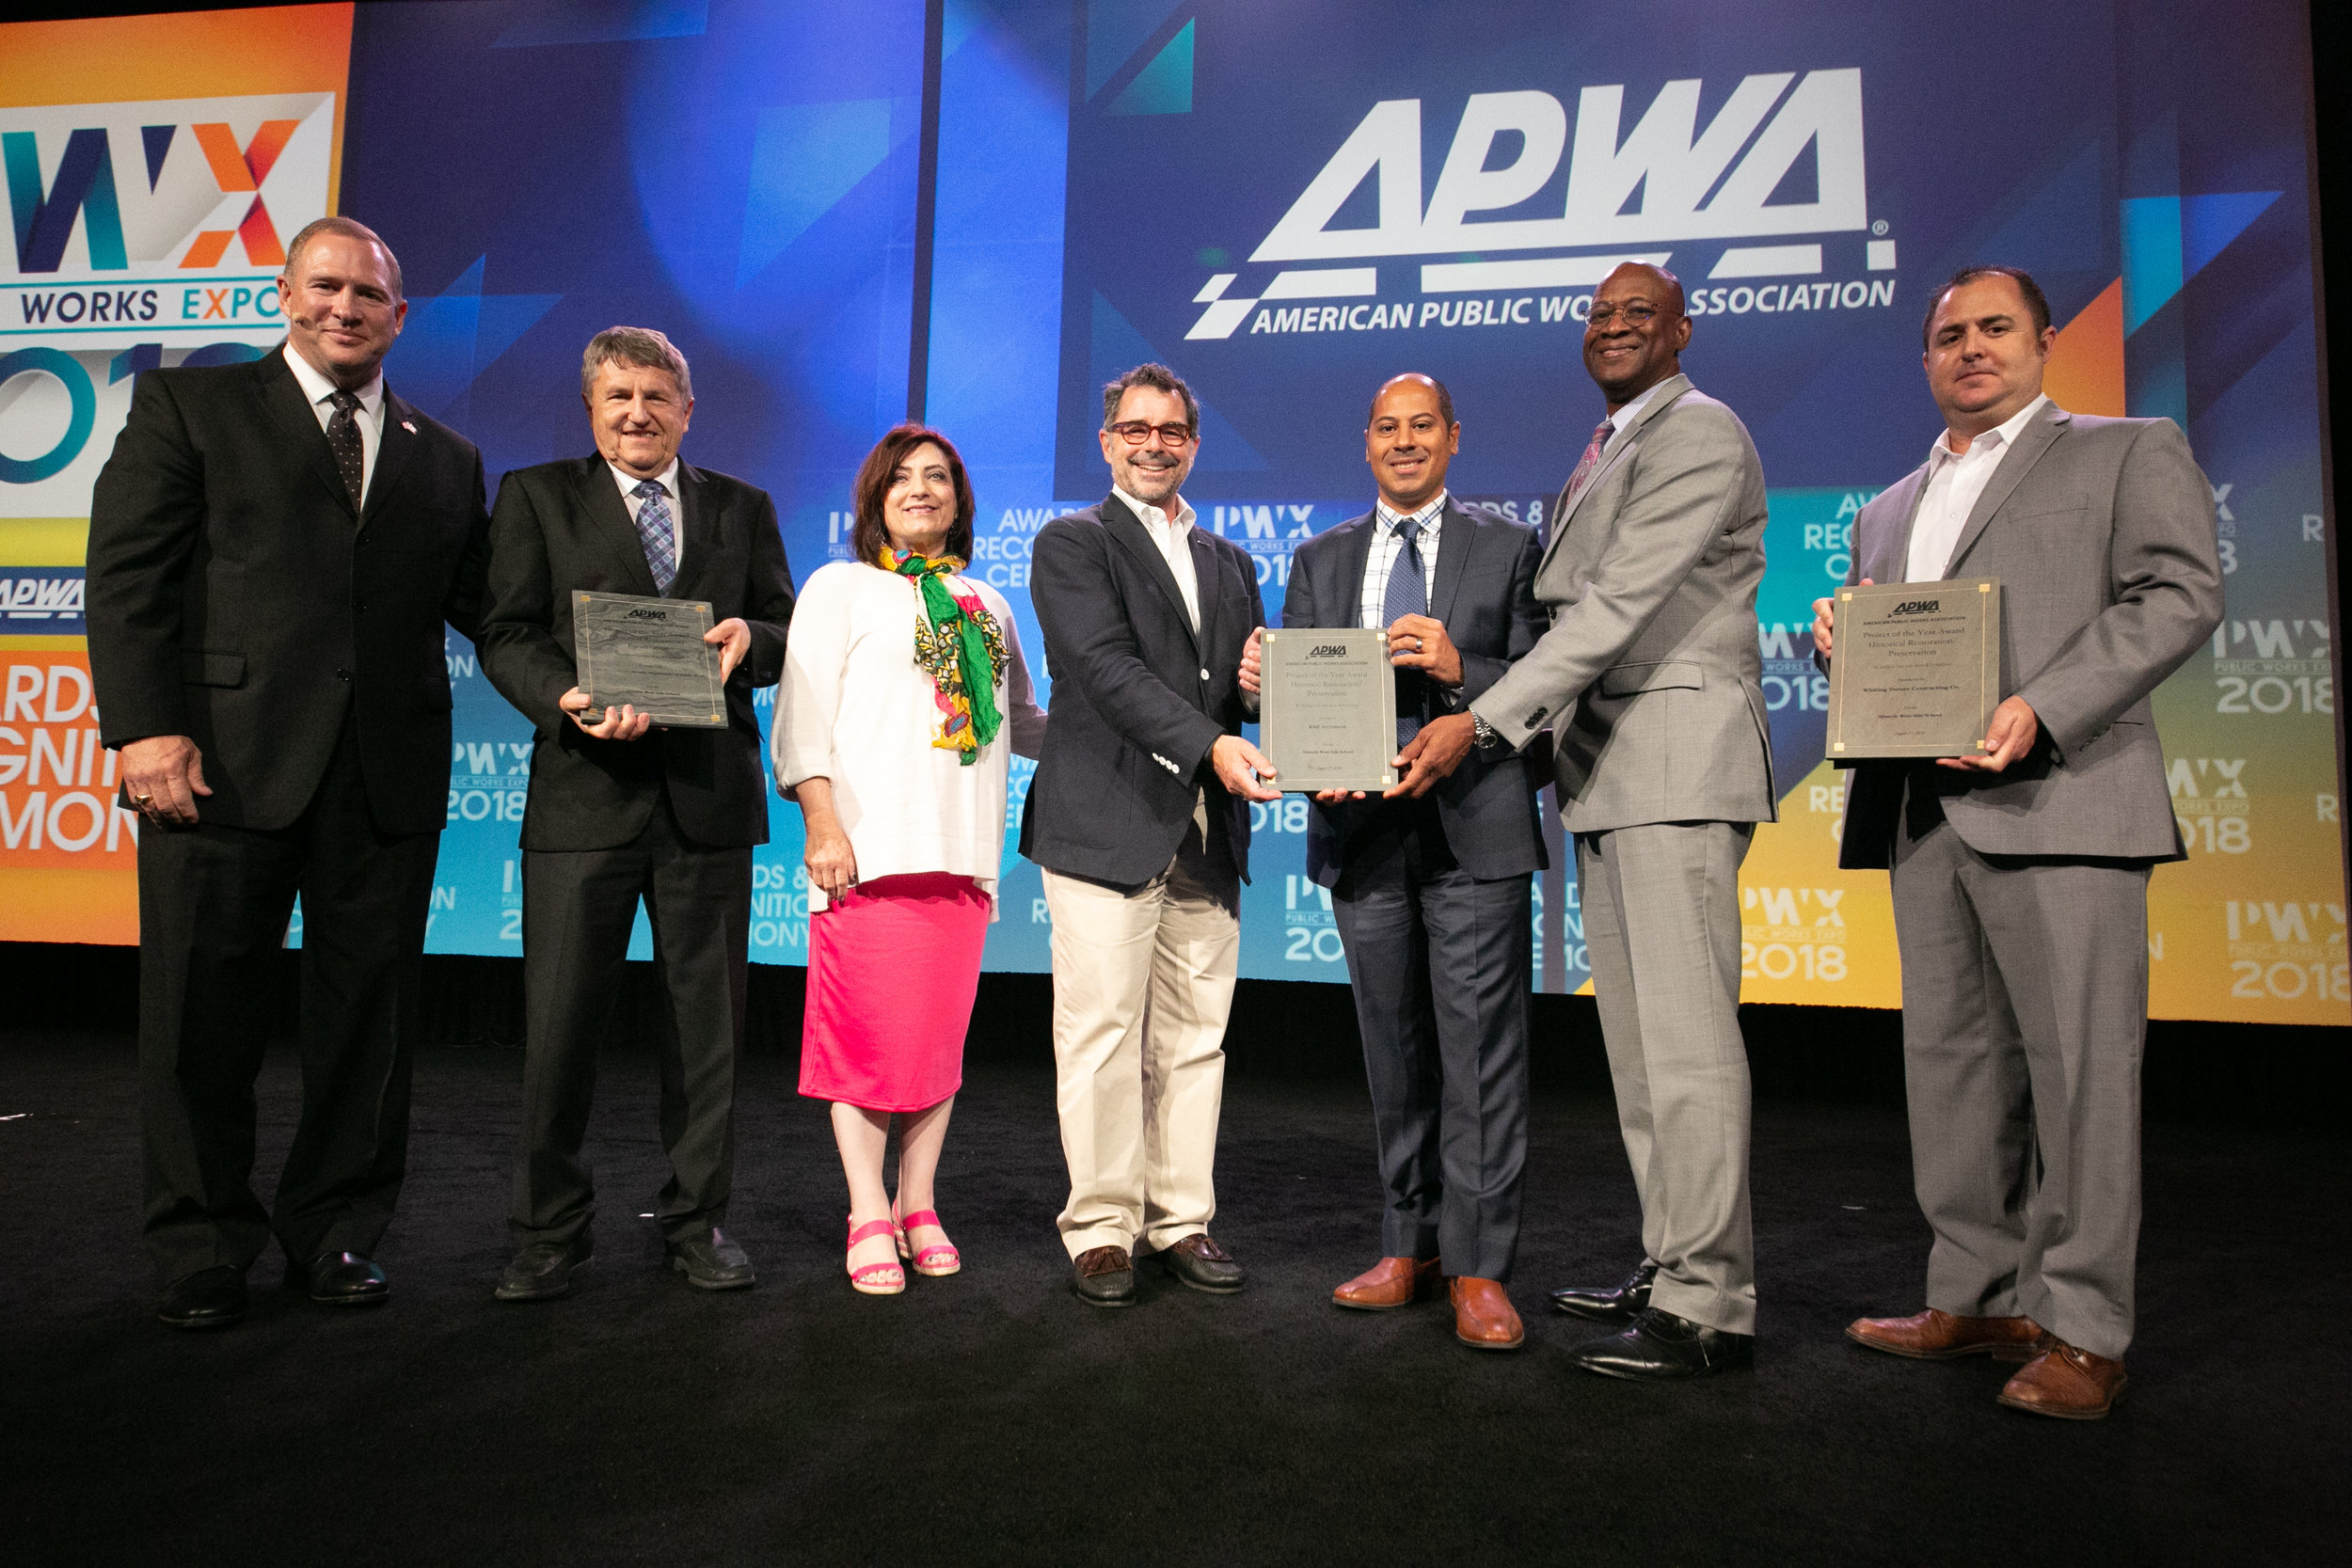 On stage receiving the American Public Works Association award